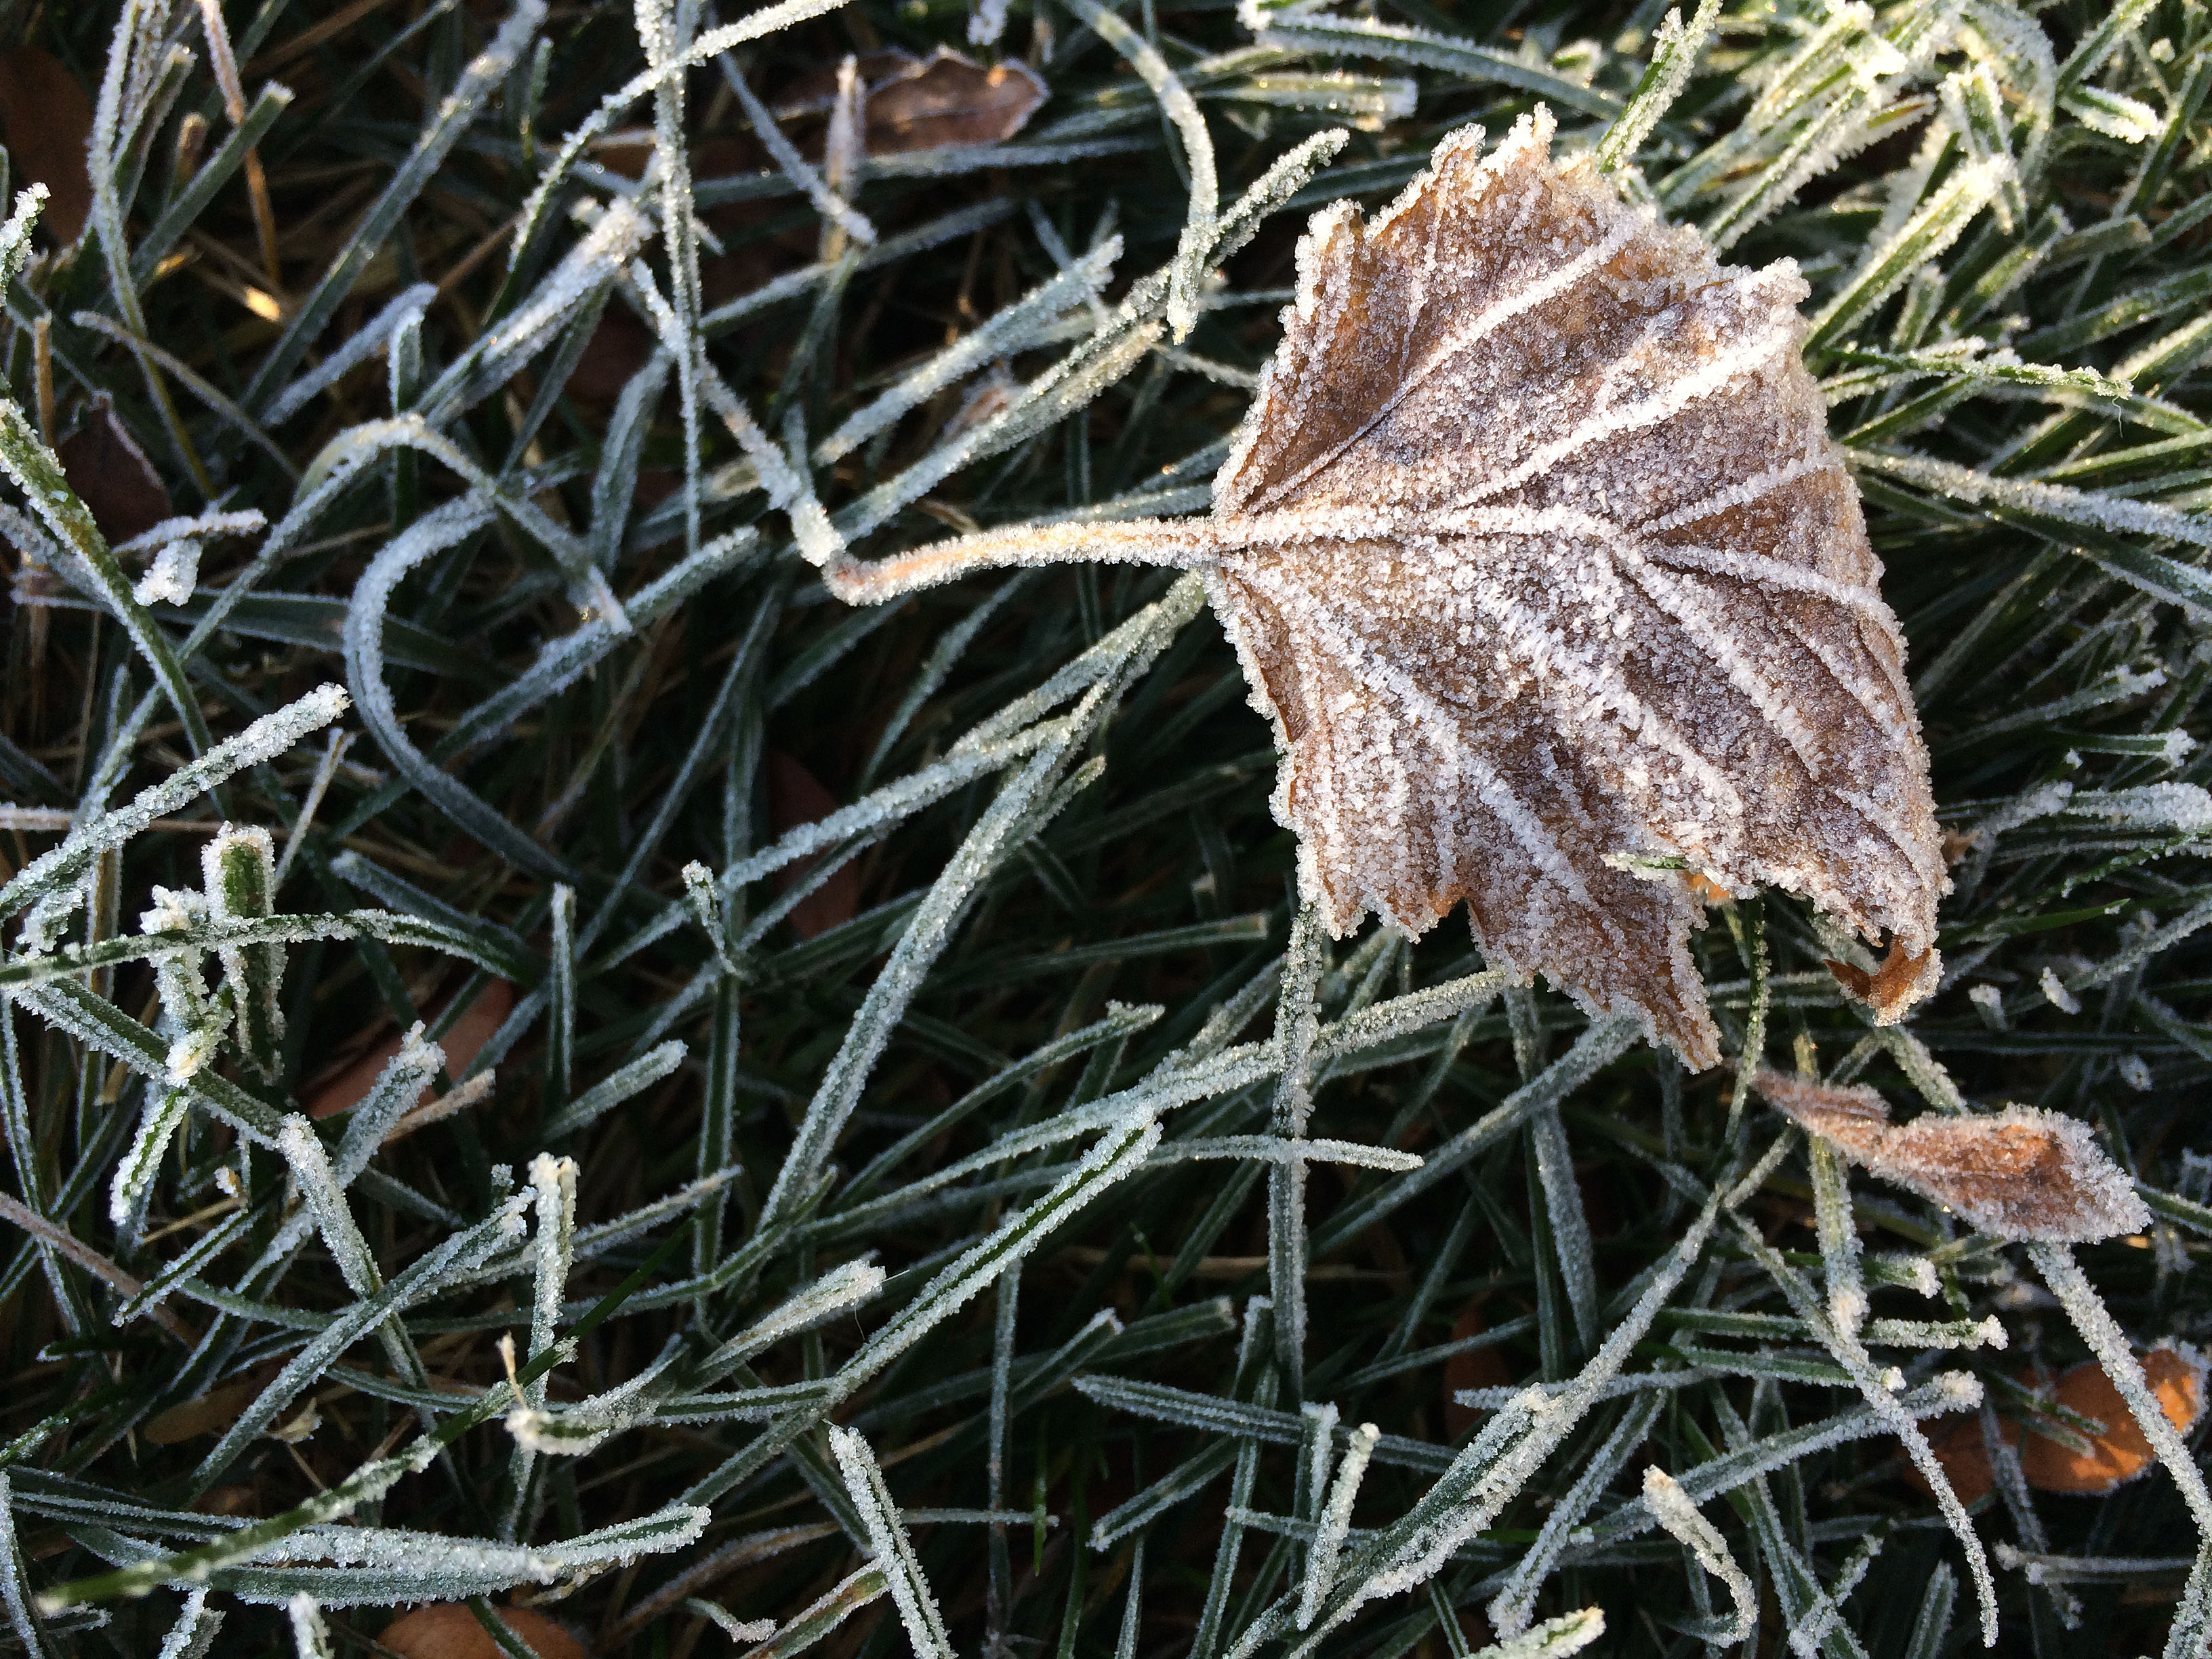 frost-on-a-leaf-in-grass